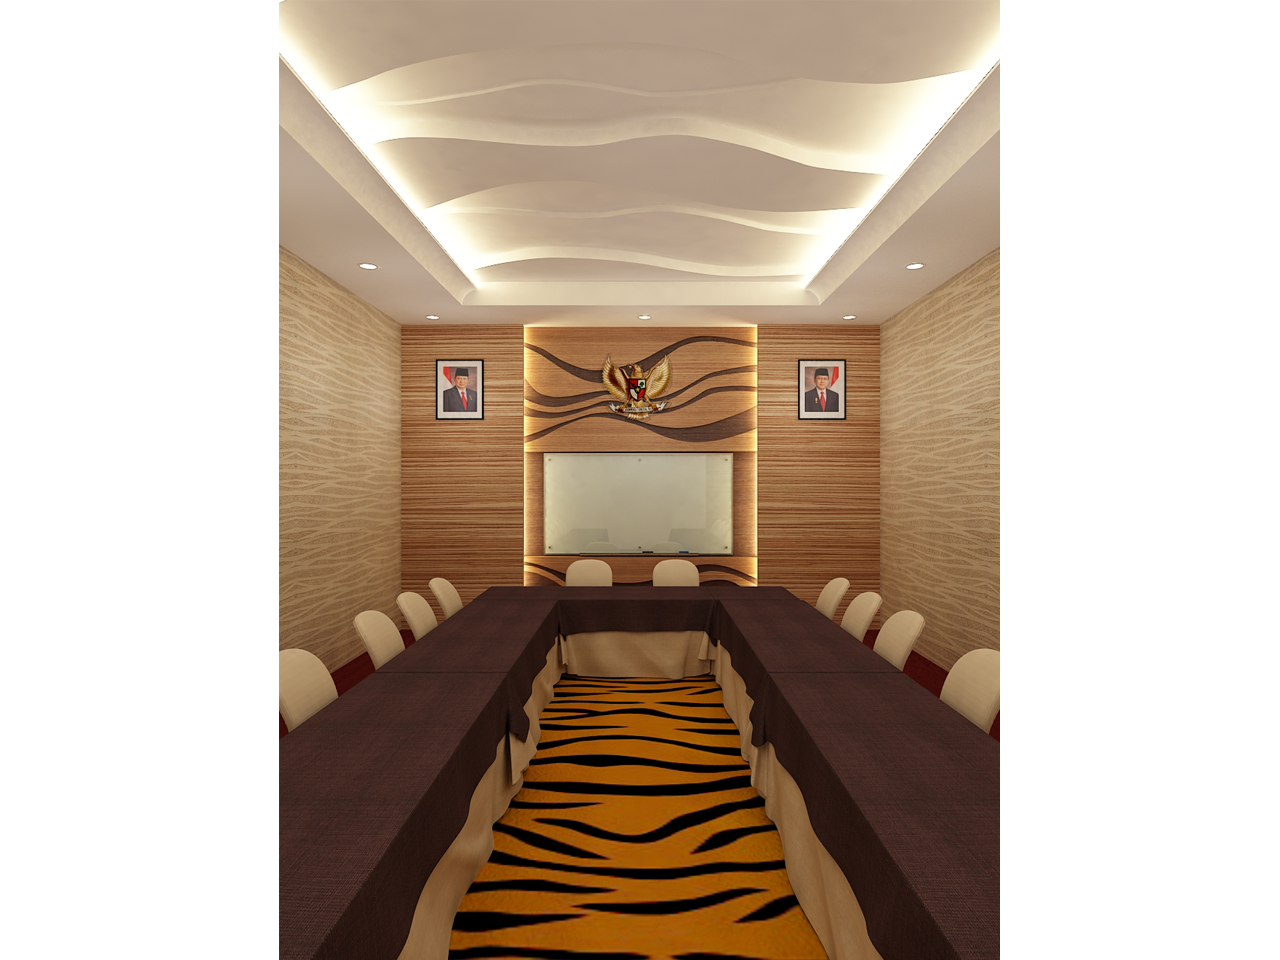 Meeting-ROom-Tiger-1.png